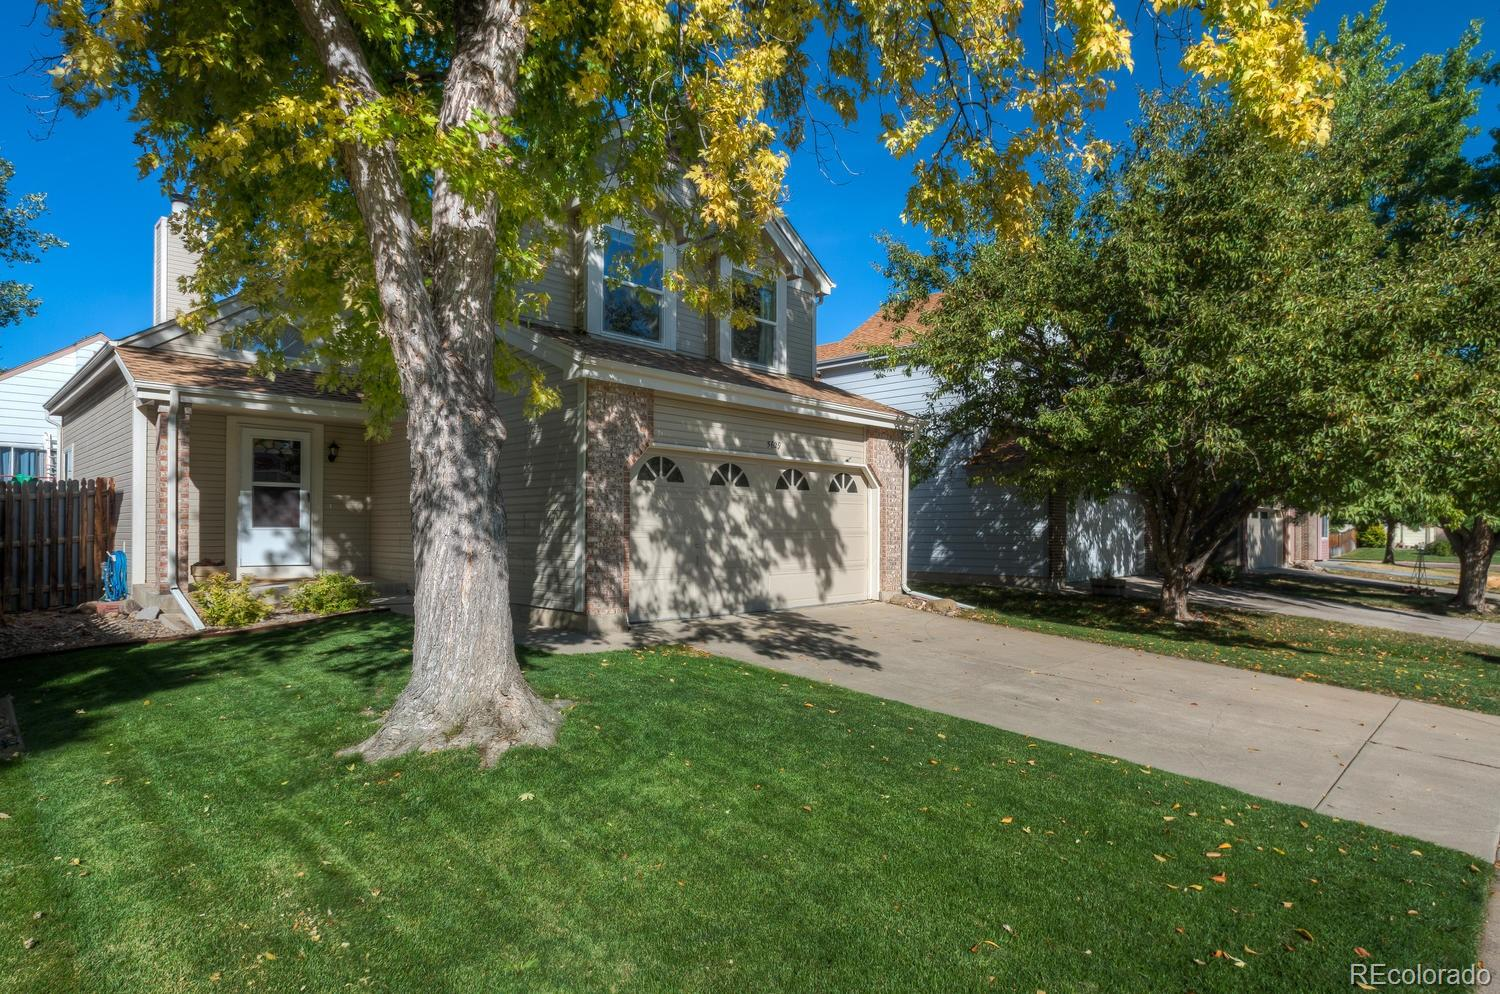 MLS# 2006537 - 31 - 5629 S Youngfield Way, Littleton, CO 80127